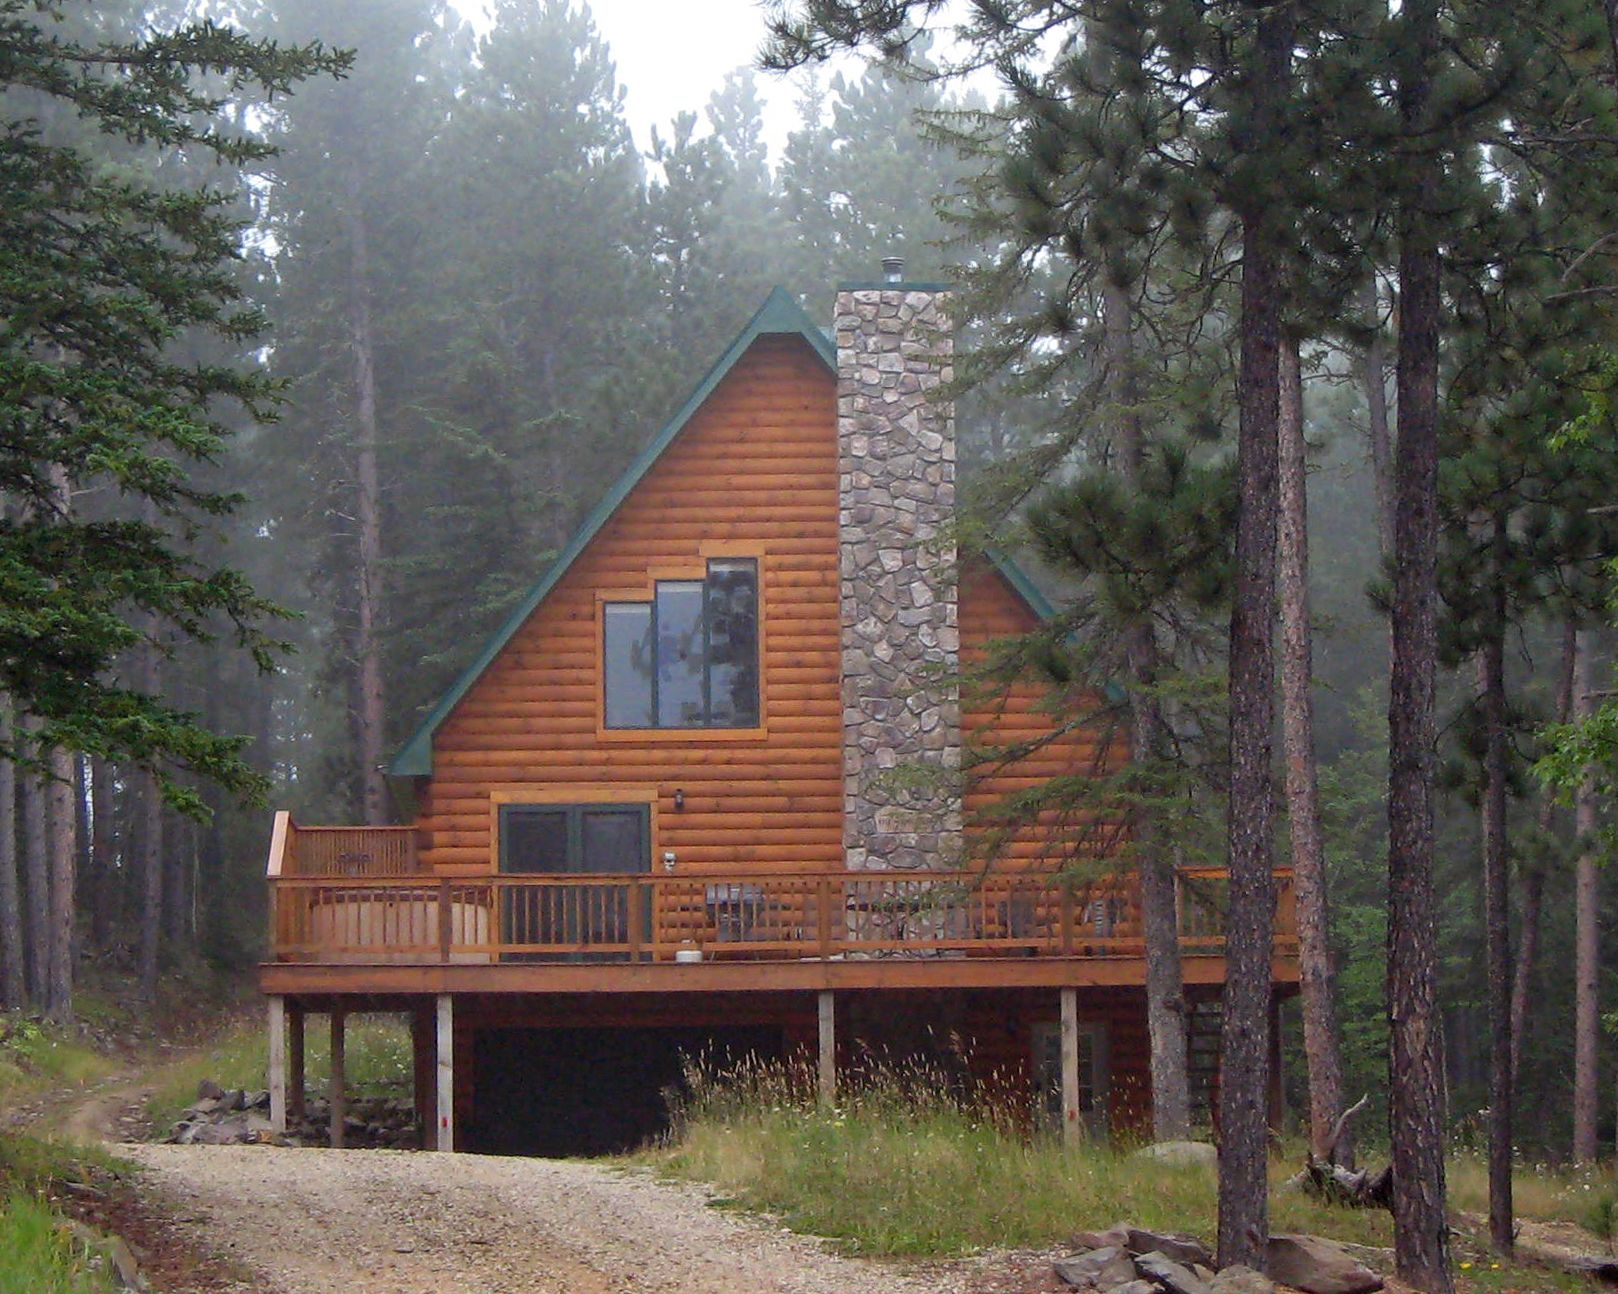 tn bedroom pin forge cabins pigeon teaster to rent trolley stop for mile cabin lane log